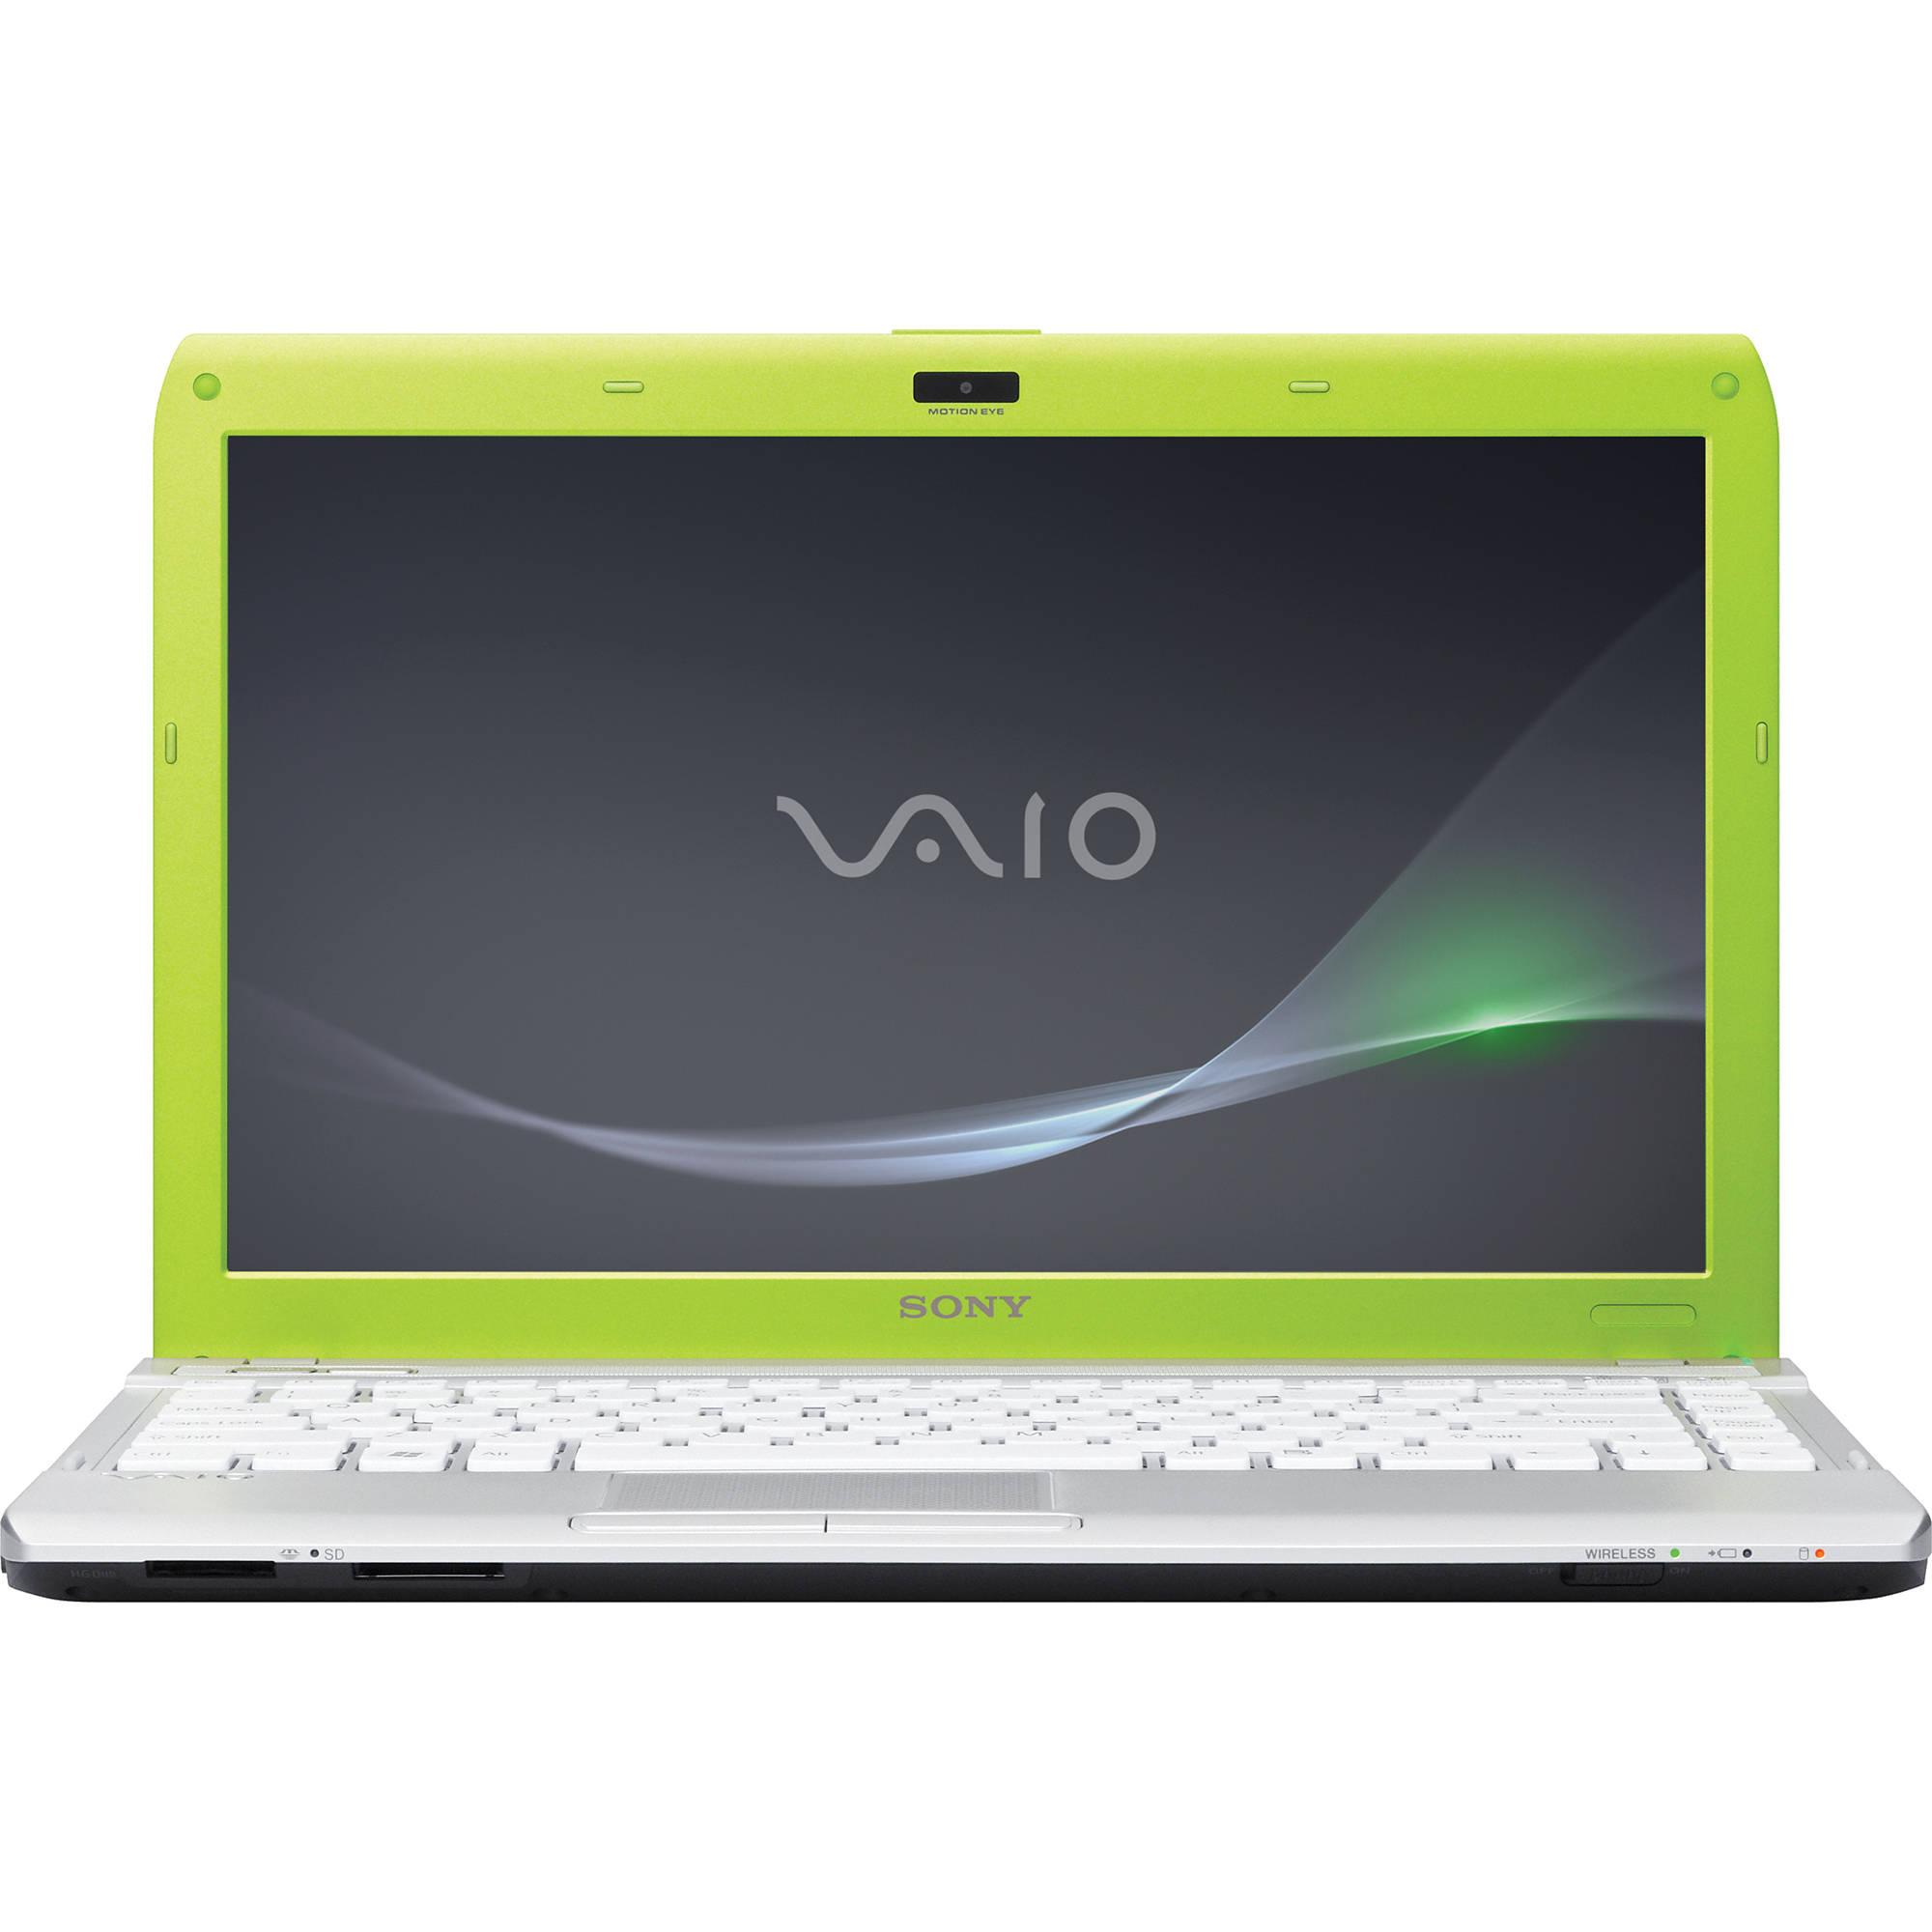 SONY VAIO VPCY216FXB DRIVER FOR WINDOWS 8